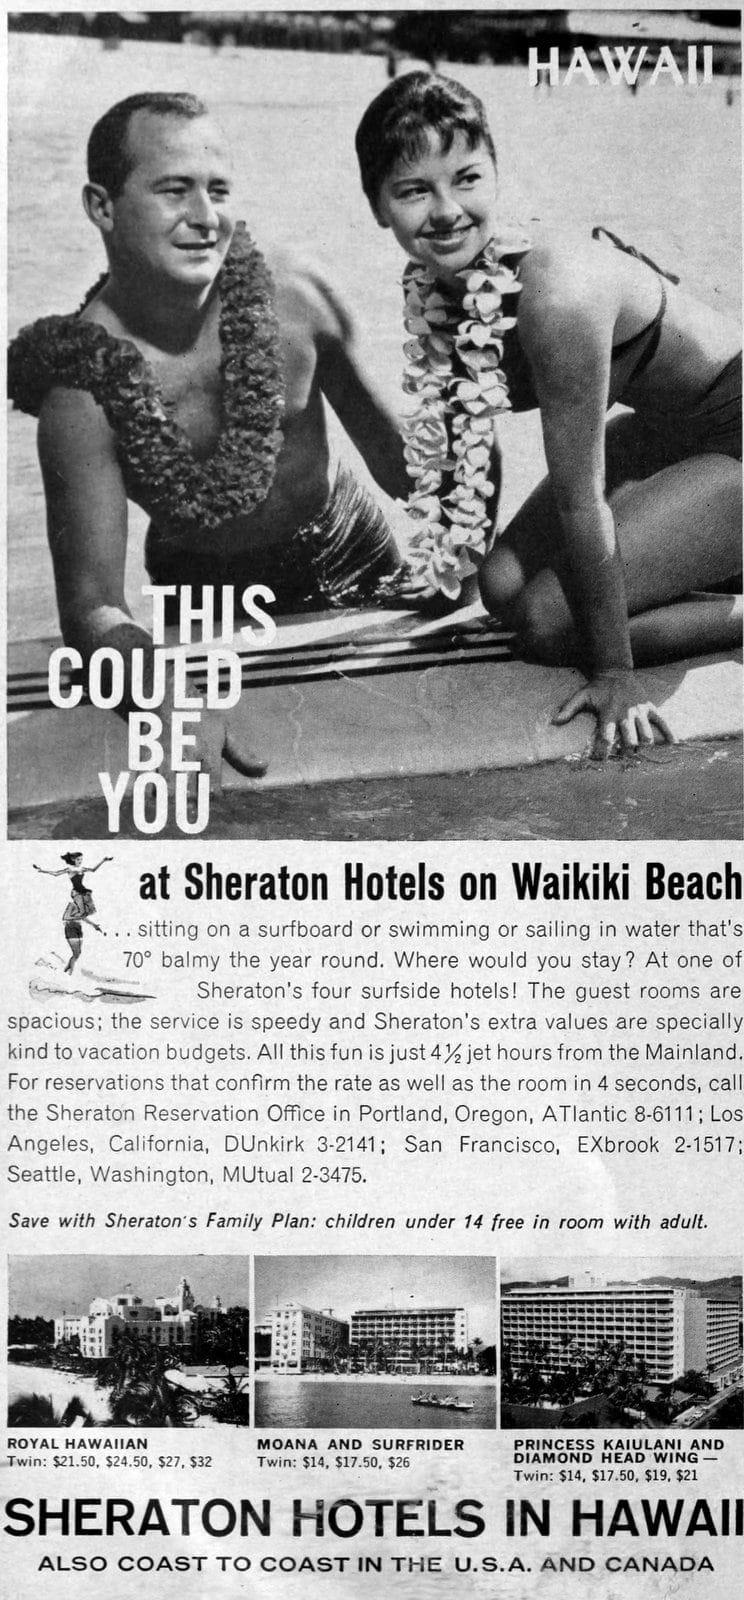 Hawaii in the 60s - Sheraton on Waikiki